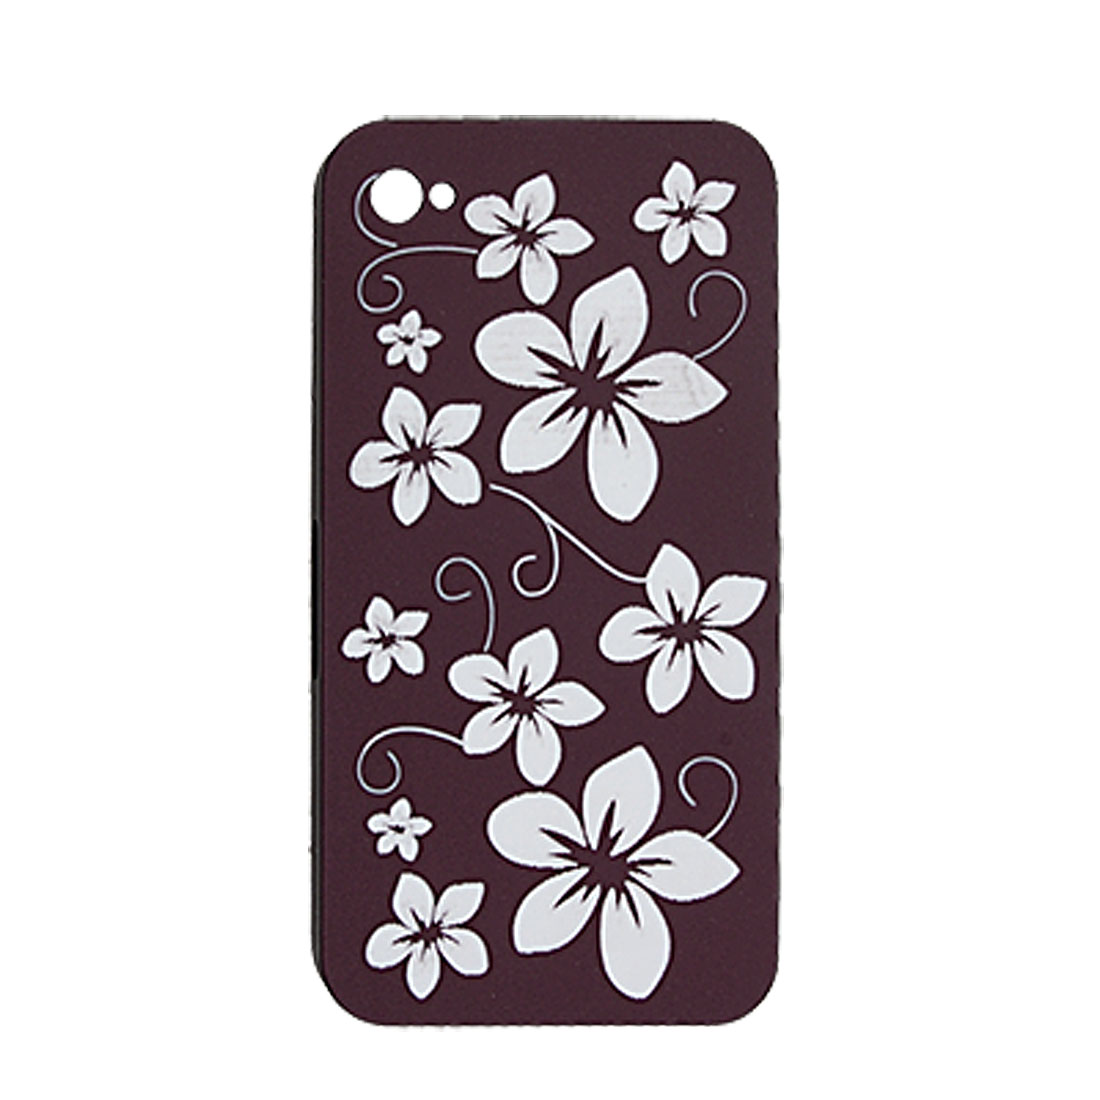 Peach Blossom Design Hard Plastic Cover for iPhone 4